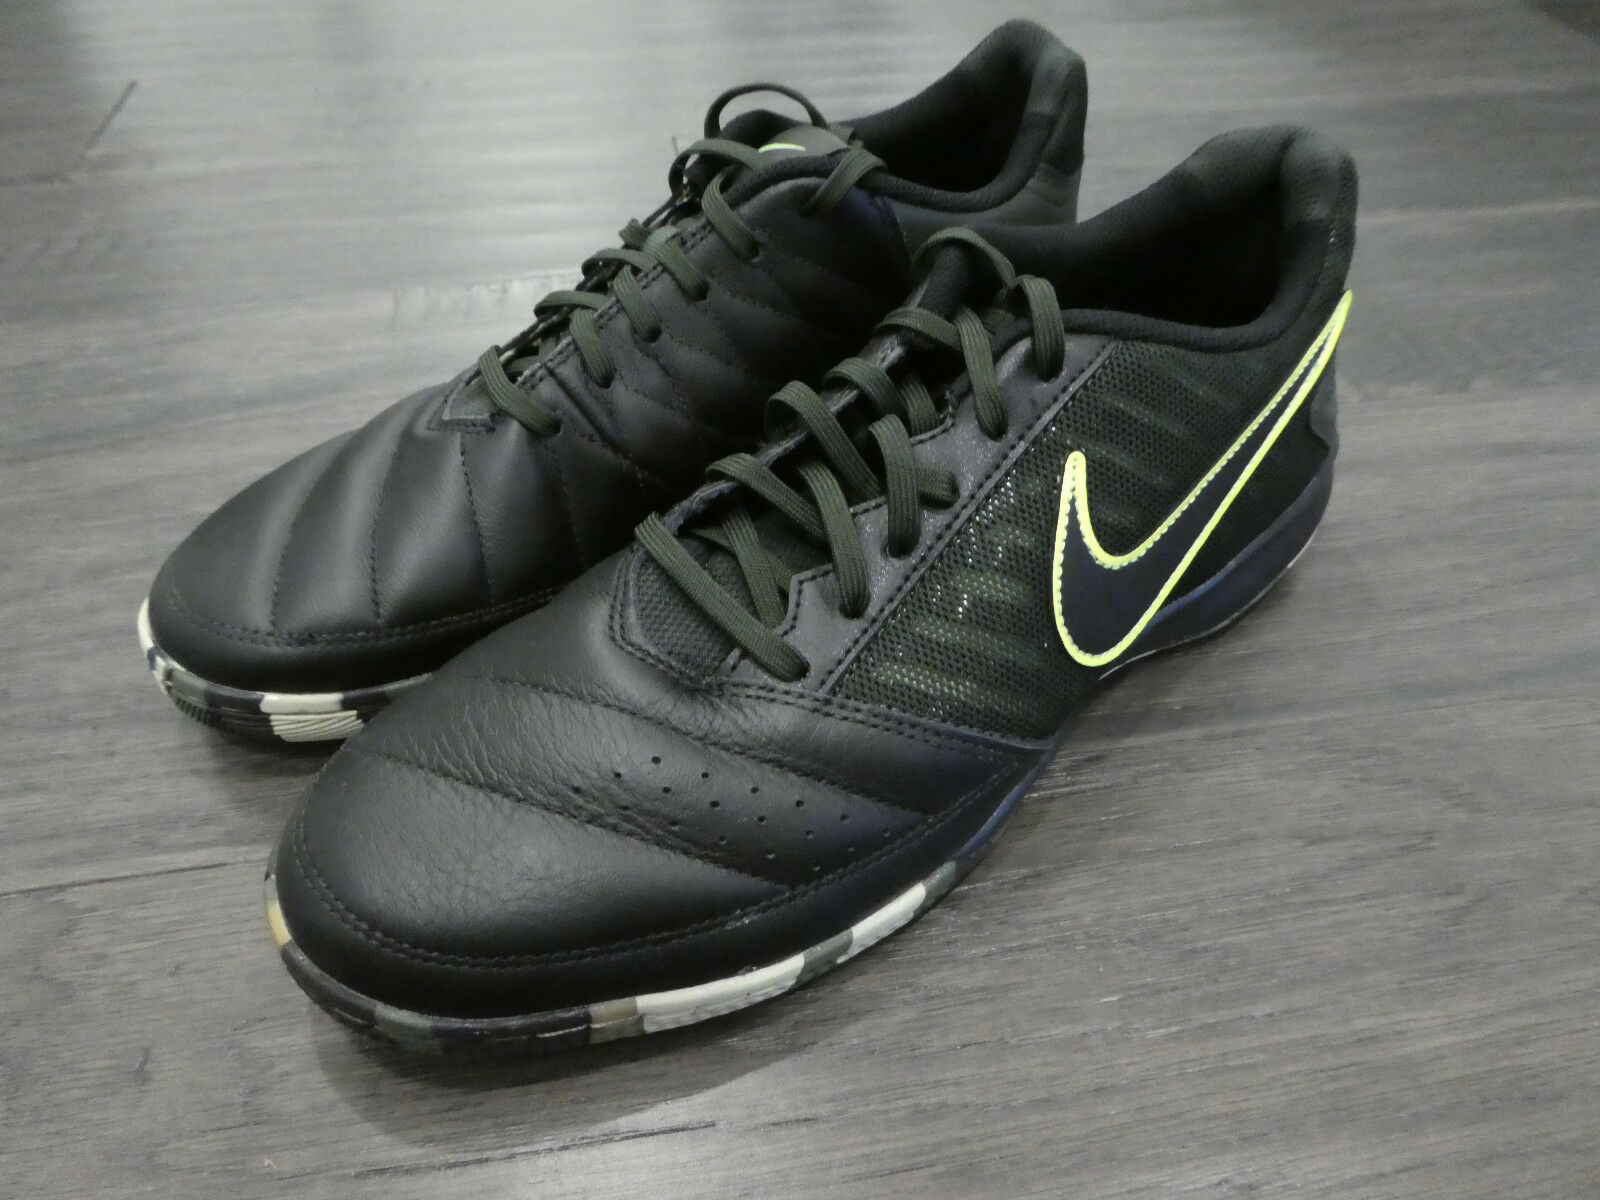 Nike Gato II indoor soccer shoes sneakers new 580453 007 camo rare